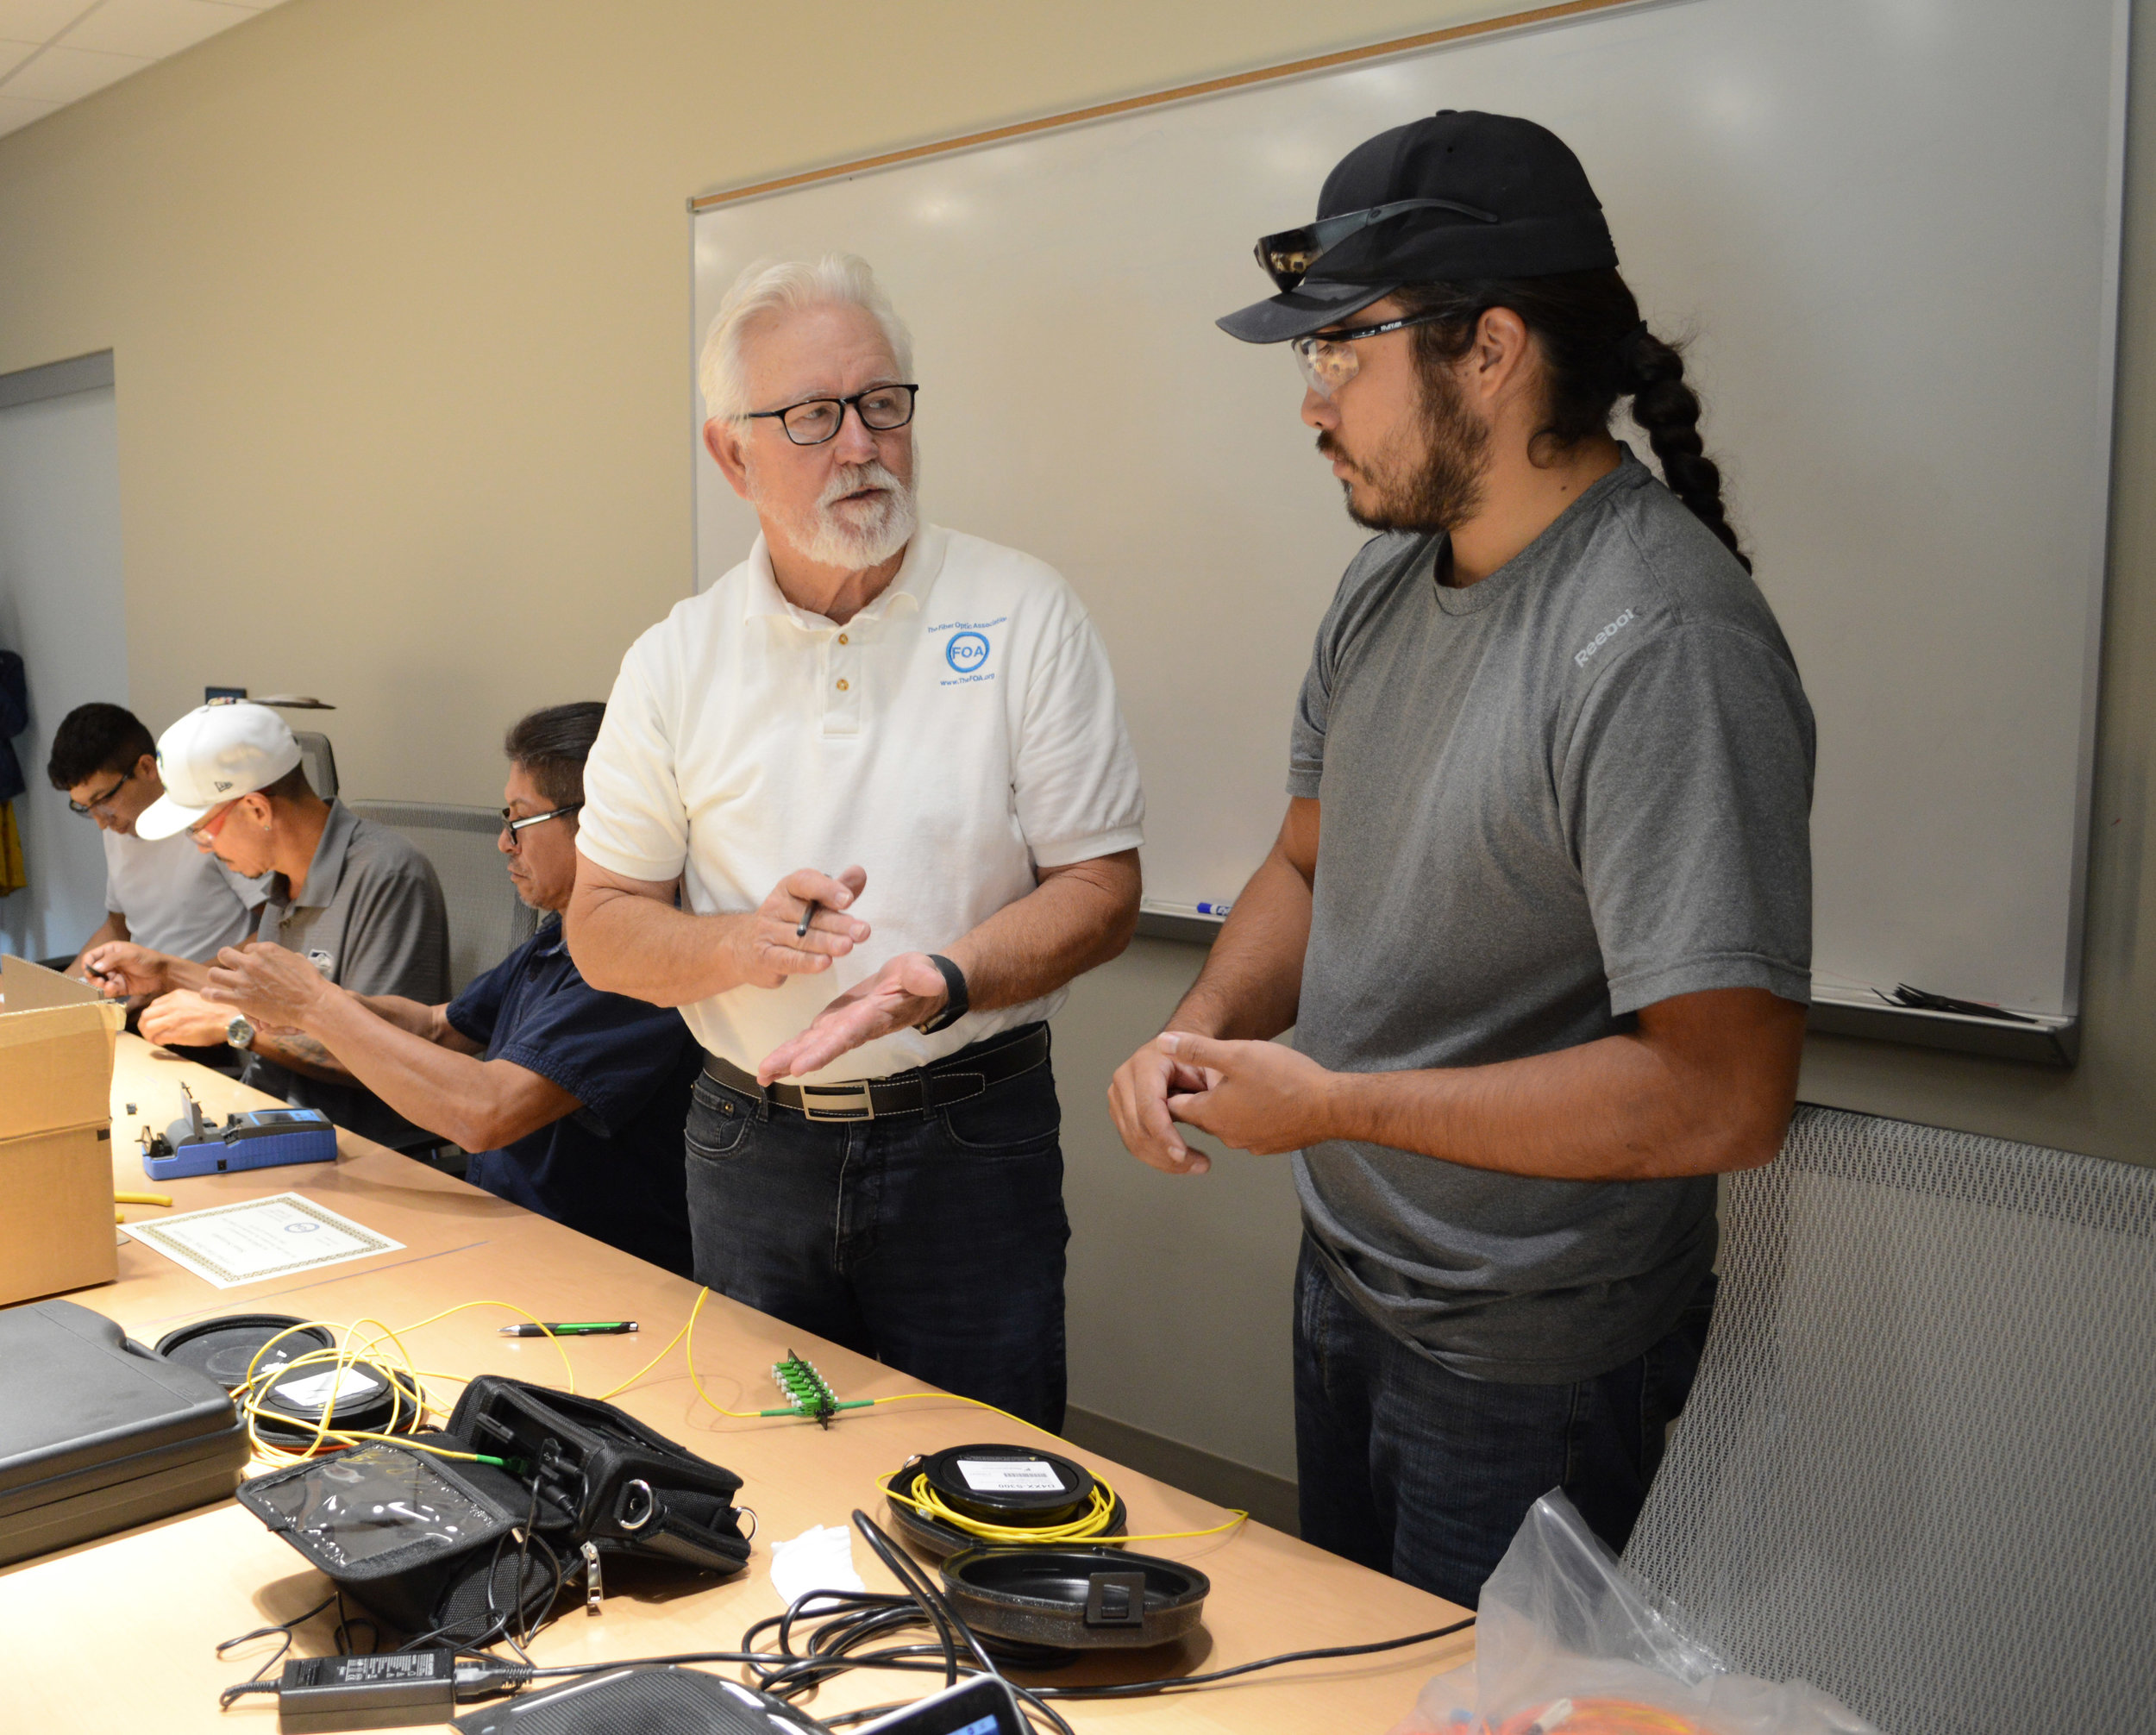 FOA Certified Fiber Optic Technician (CFOT)3-Day Course - The Prerequisite for all other International Network Consultants CoursesFOA Certified Fiber Optic Specialist, Technician (CFOT)- 3 Day CourseCFOT - Certified Fiber Optic Technician is the primary FOA certification for all fiber optic technicians. CFOTs have a broad knowledge, skills and abilities (KSAs) in fiber optics that can be applied to almost any job – design, installation, operation – and for almost an application using fiber optic communications.